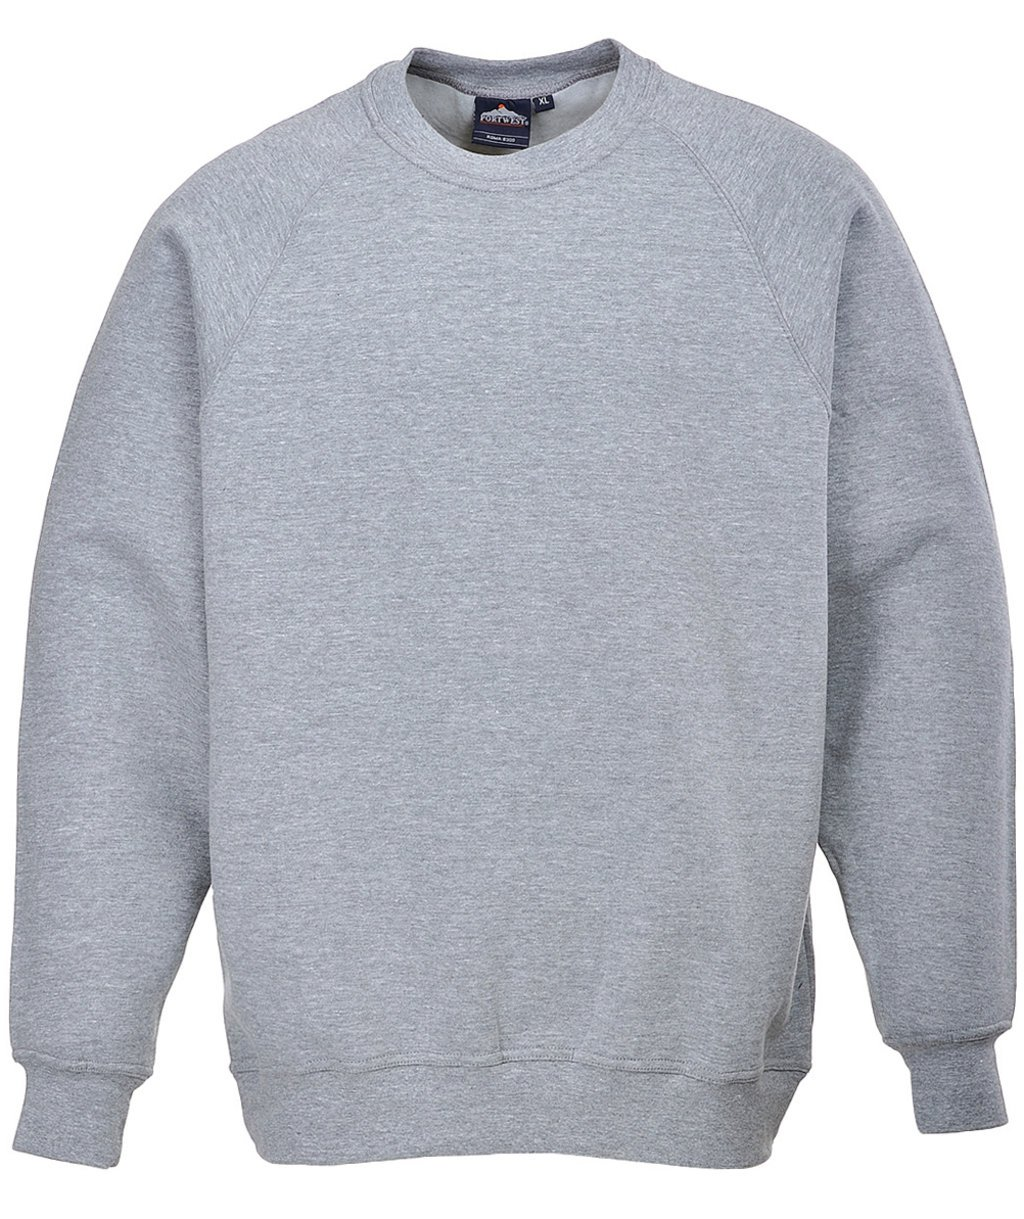 Portwest Roma sweatshirt, Heather Grey